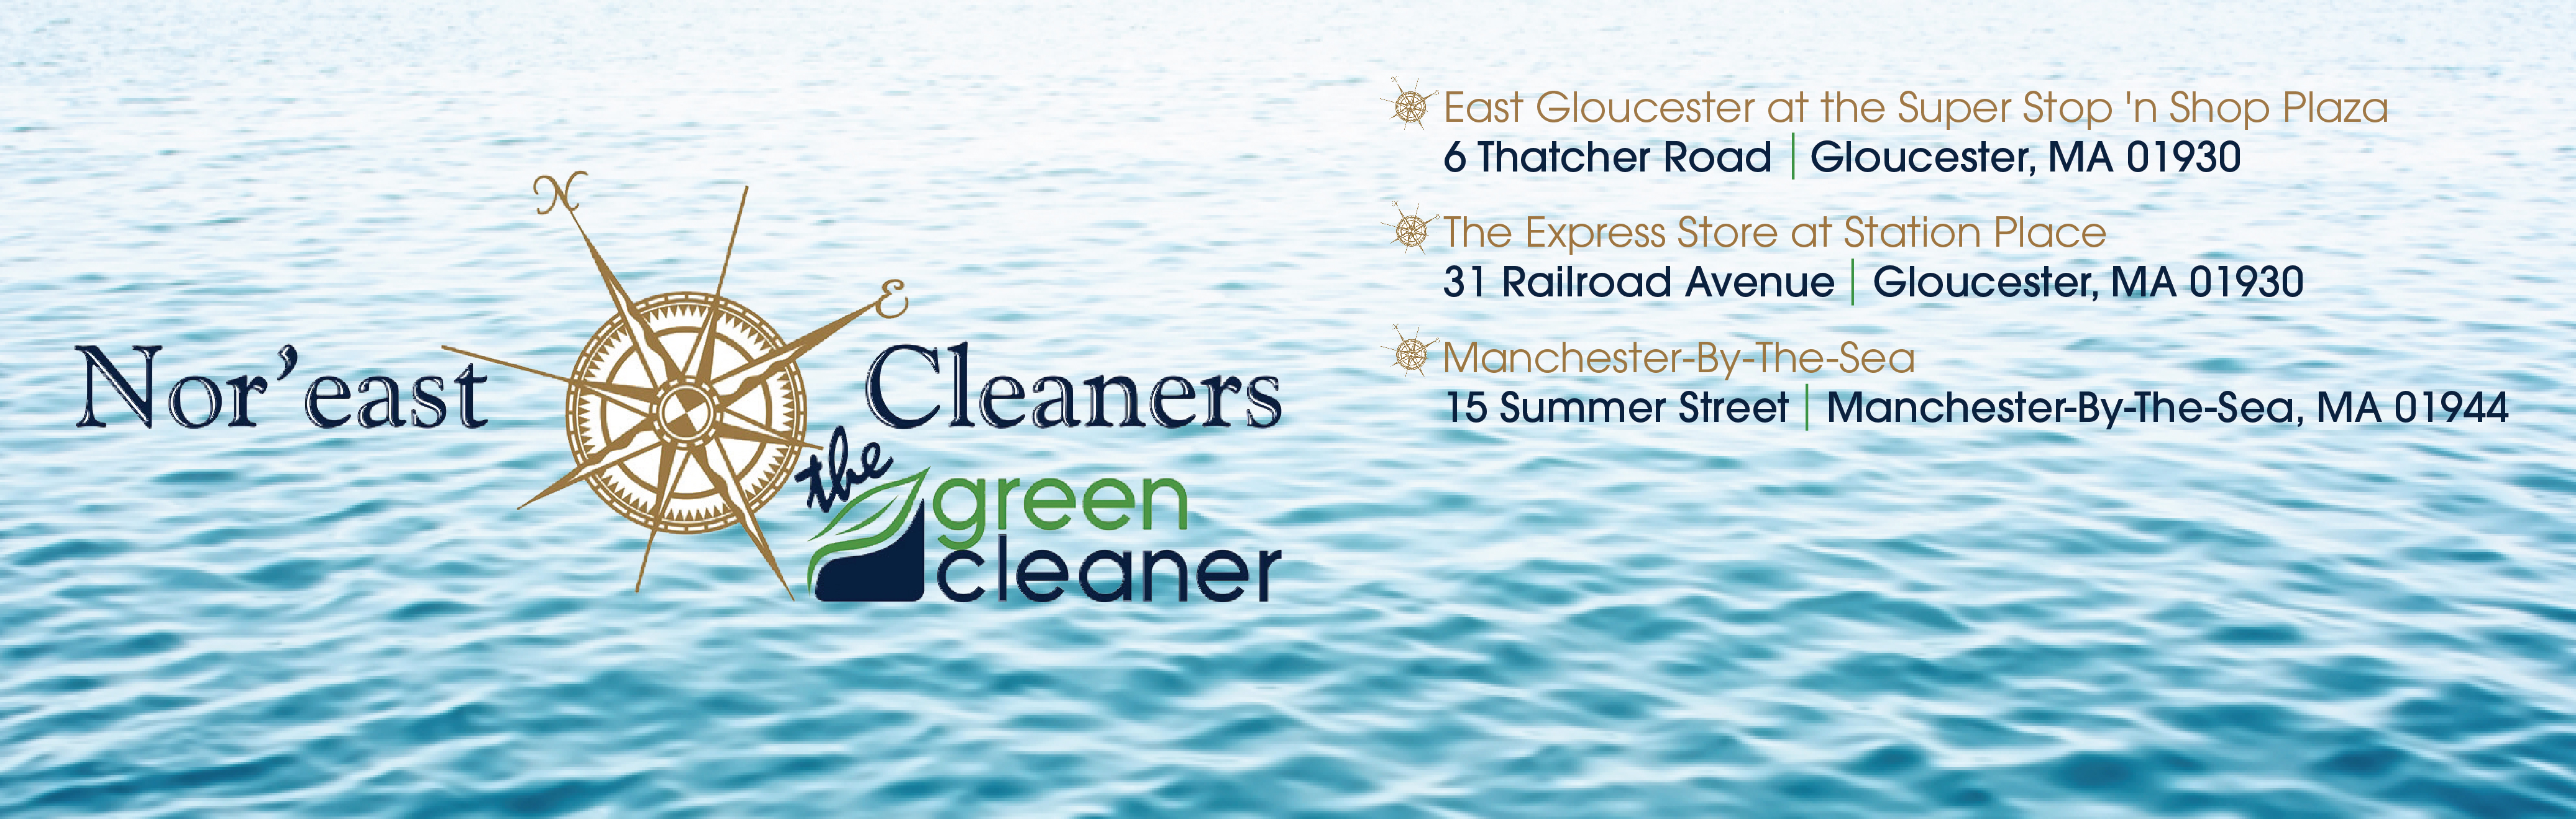 Nor'east Cleaners | Dry Cleaning & Laundry in 6 Thatcher Rd - Gloucester MA - Reviews - Photos - Phone Number